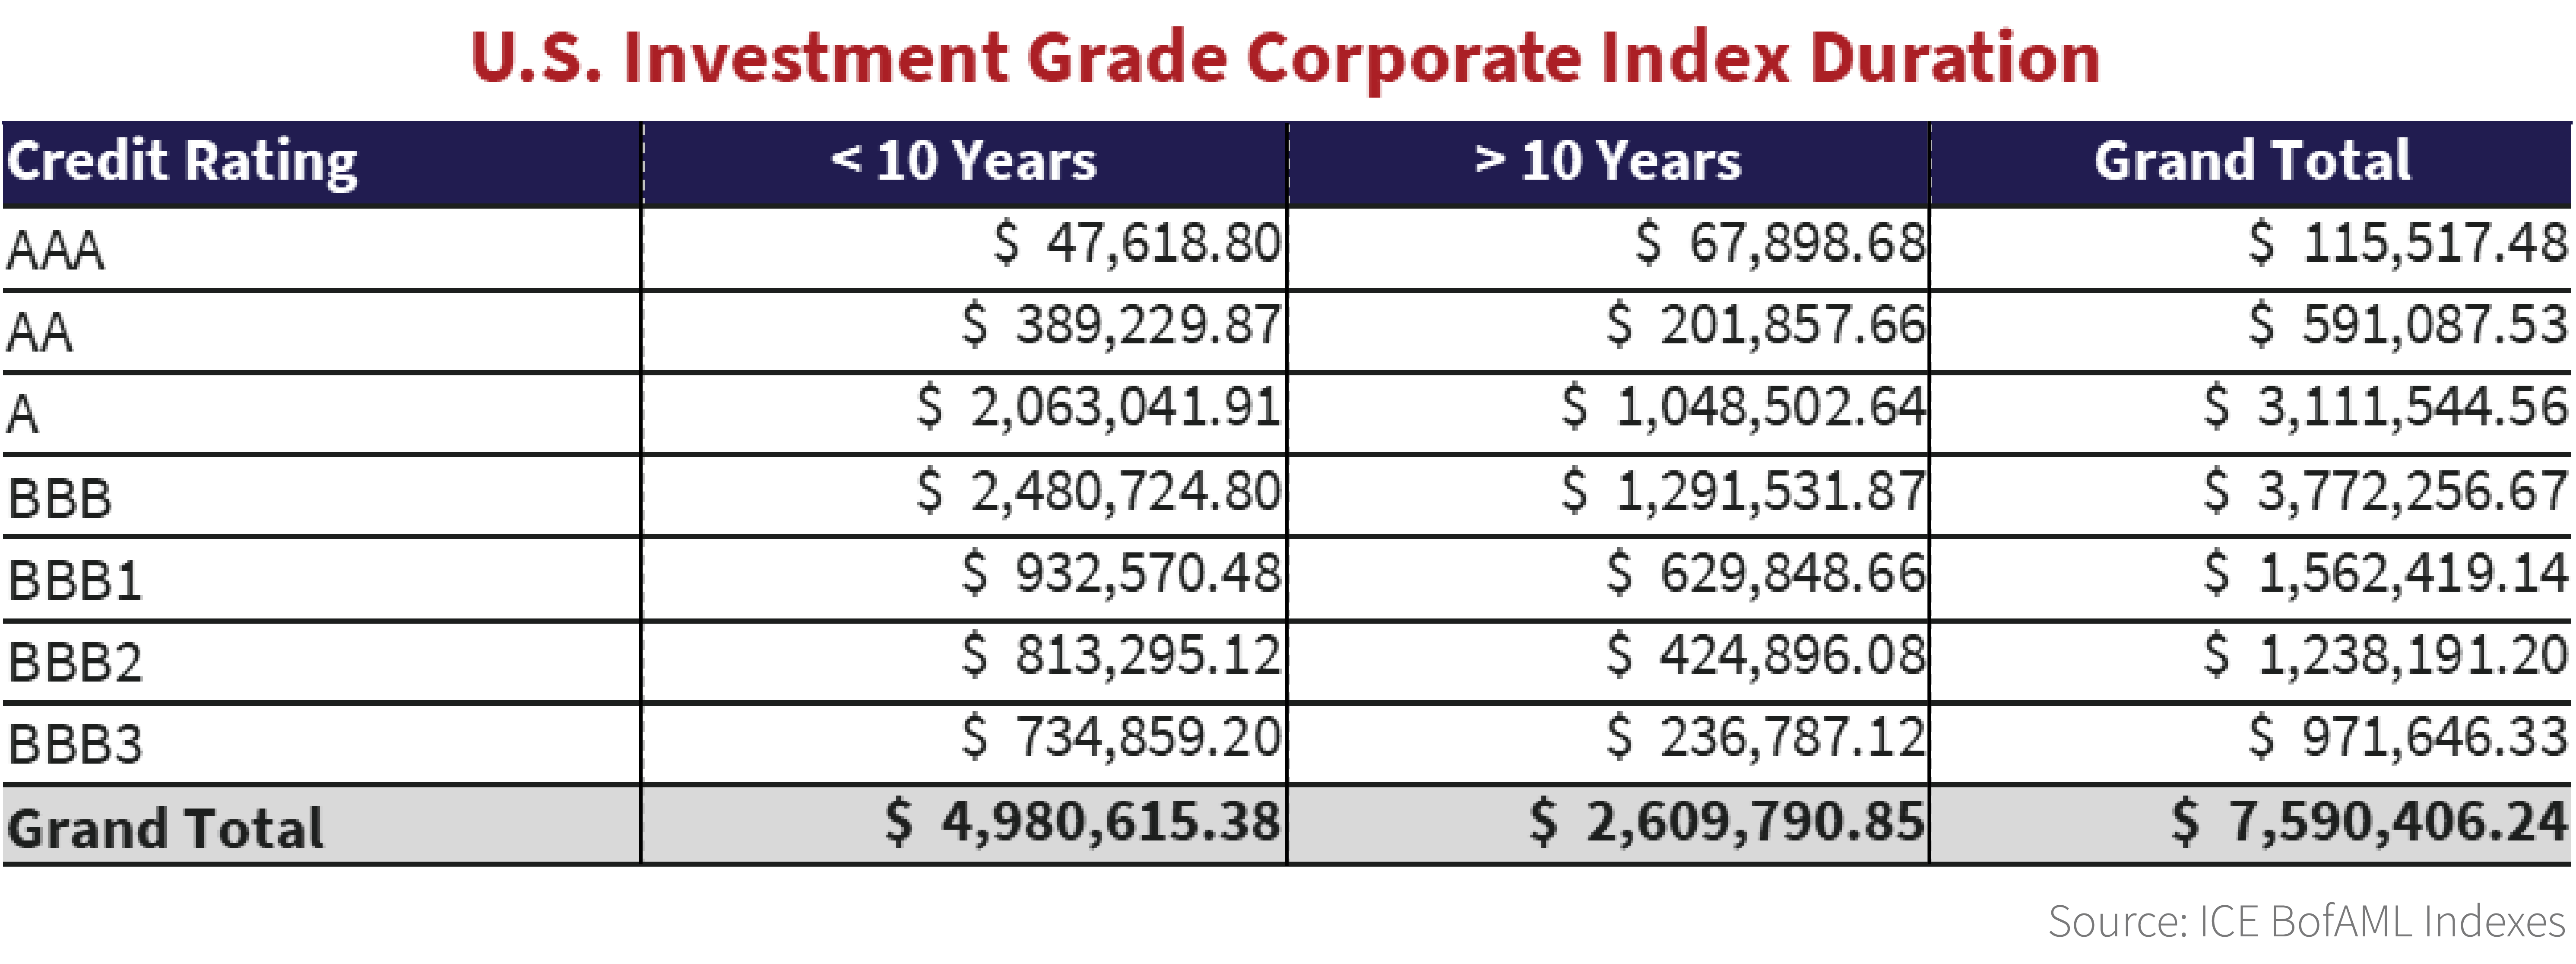 The table breaks down the ICE BofAML U.S. Investment Grade Corporate Index by term to maturities of less than 10 years and more than 10 years.